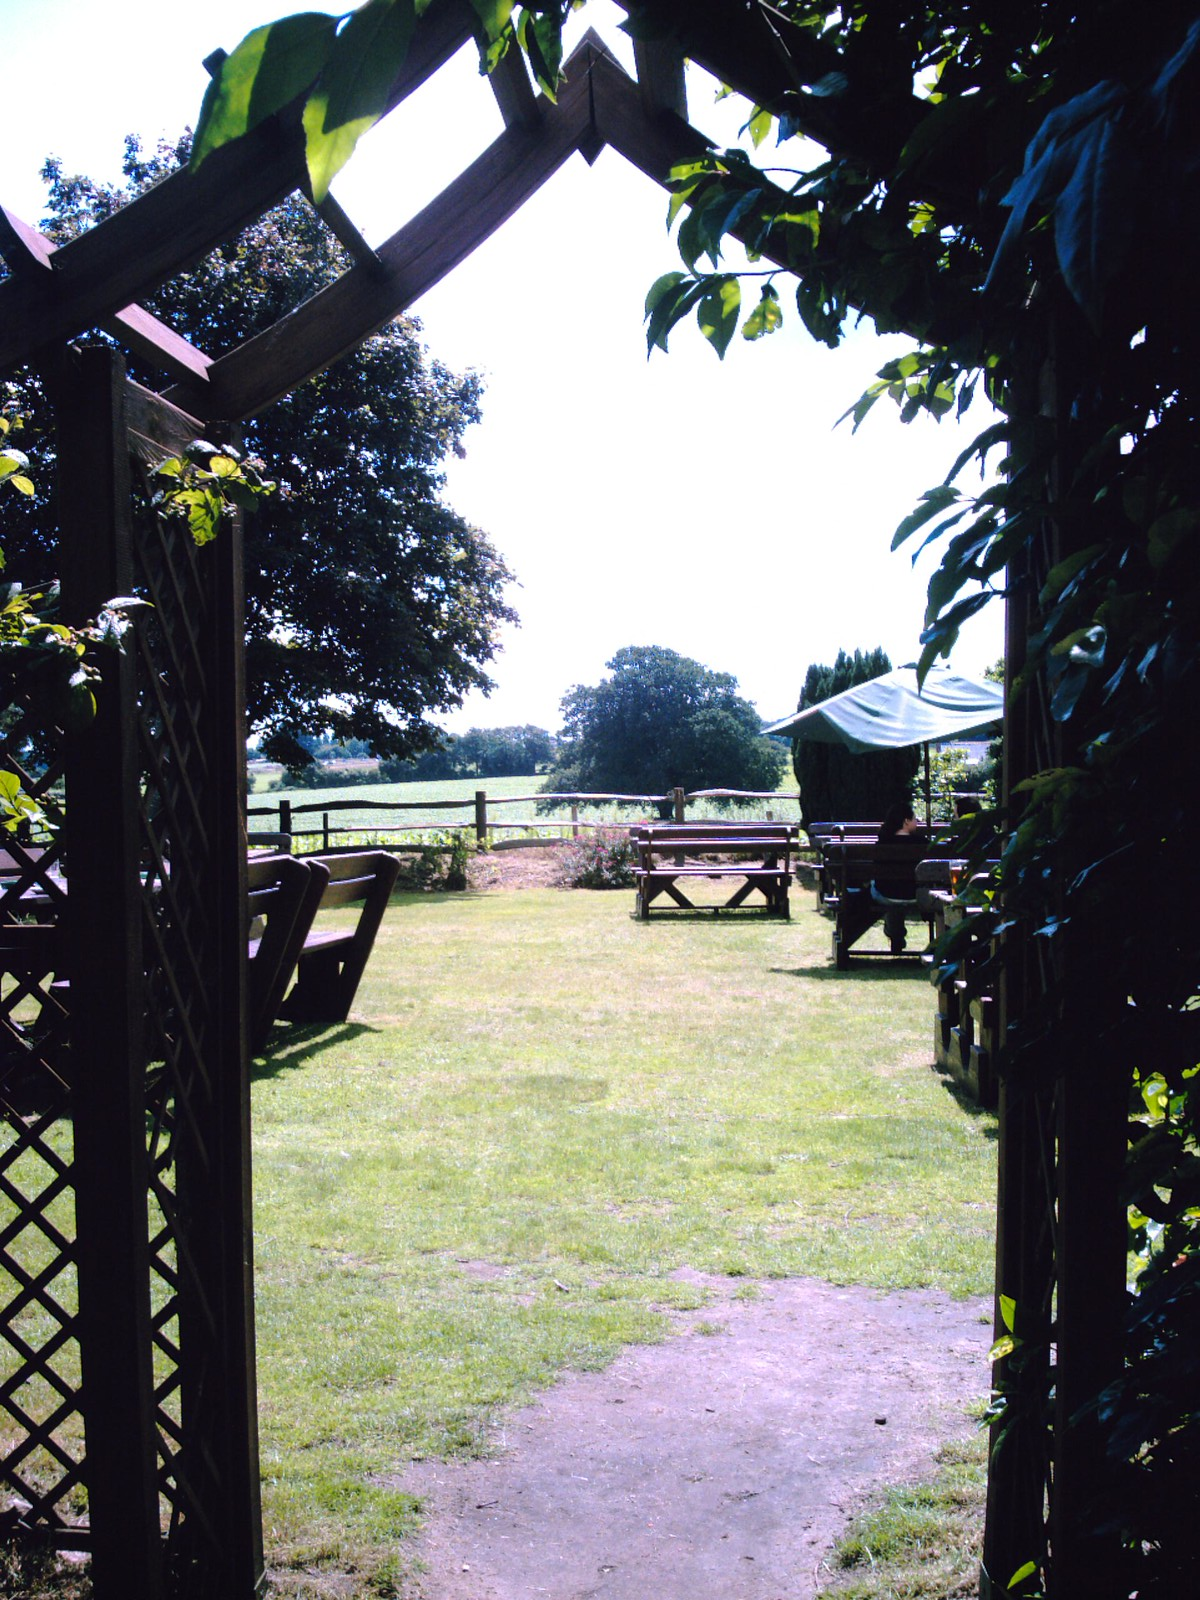 Milford to Haslemere Welcome to the Beer Garden! The recommended Pub for lunch once more: The Three Horse Shoes, Thursley. D.Allen Vivitar 5199 5mp